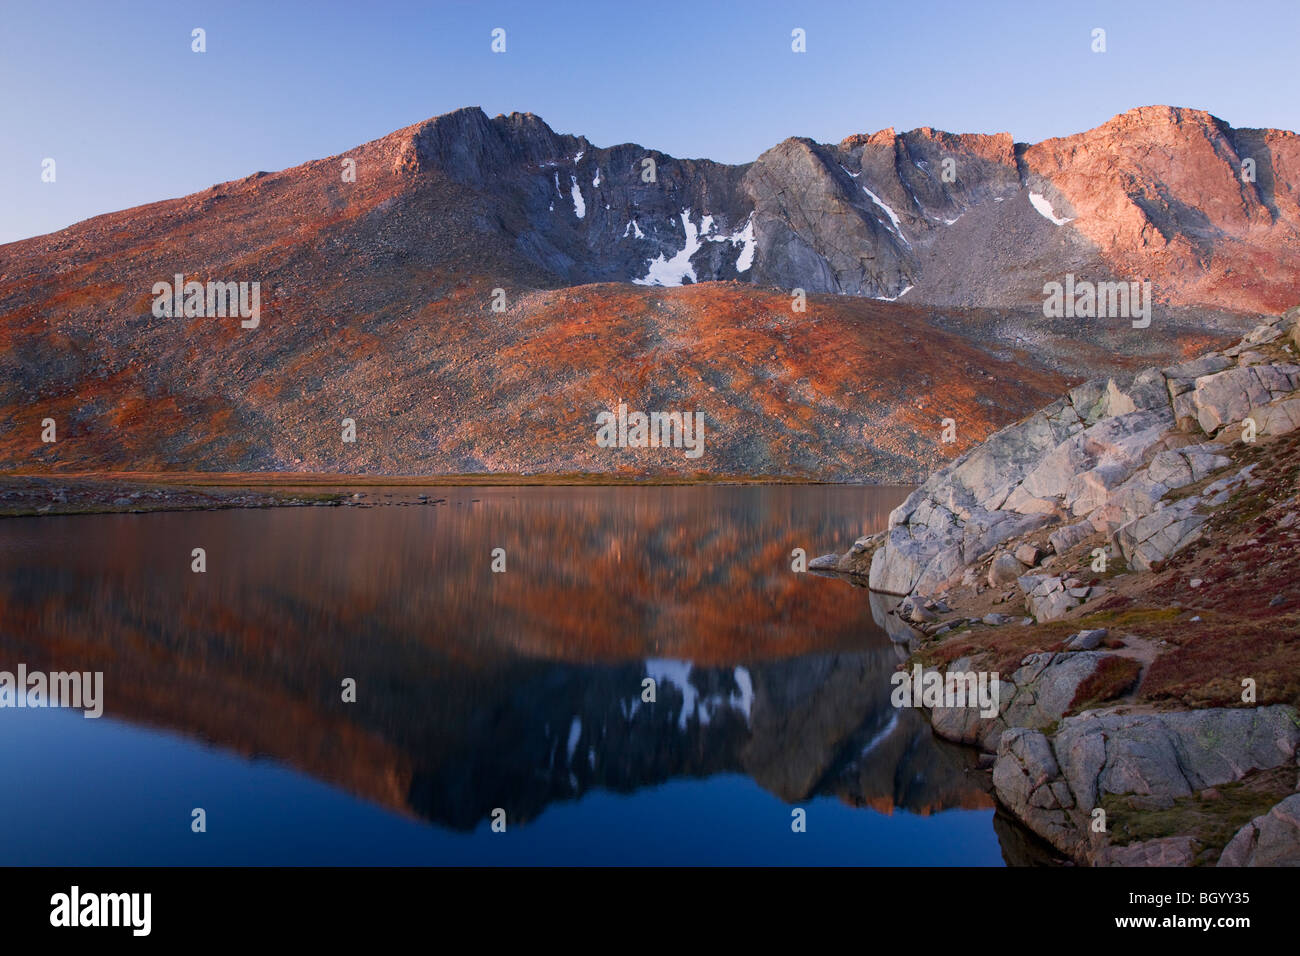 Summit Lake, Mount Evans Erholungsgebiet, Arapaho National Forest, Colorado. Stockbild